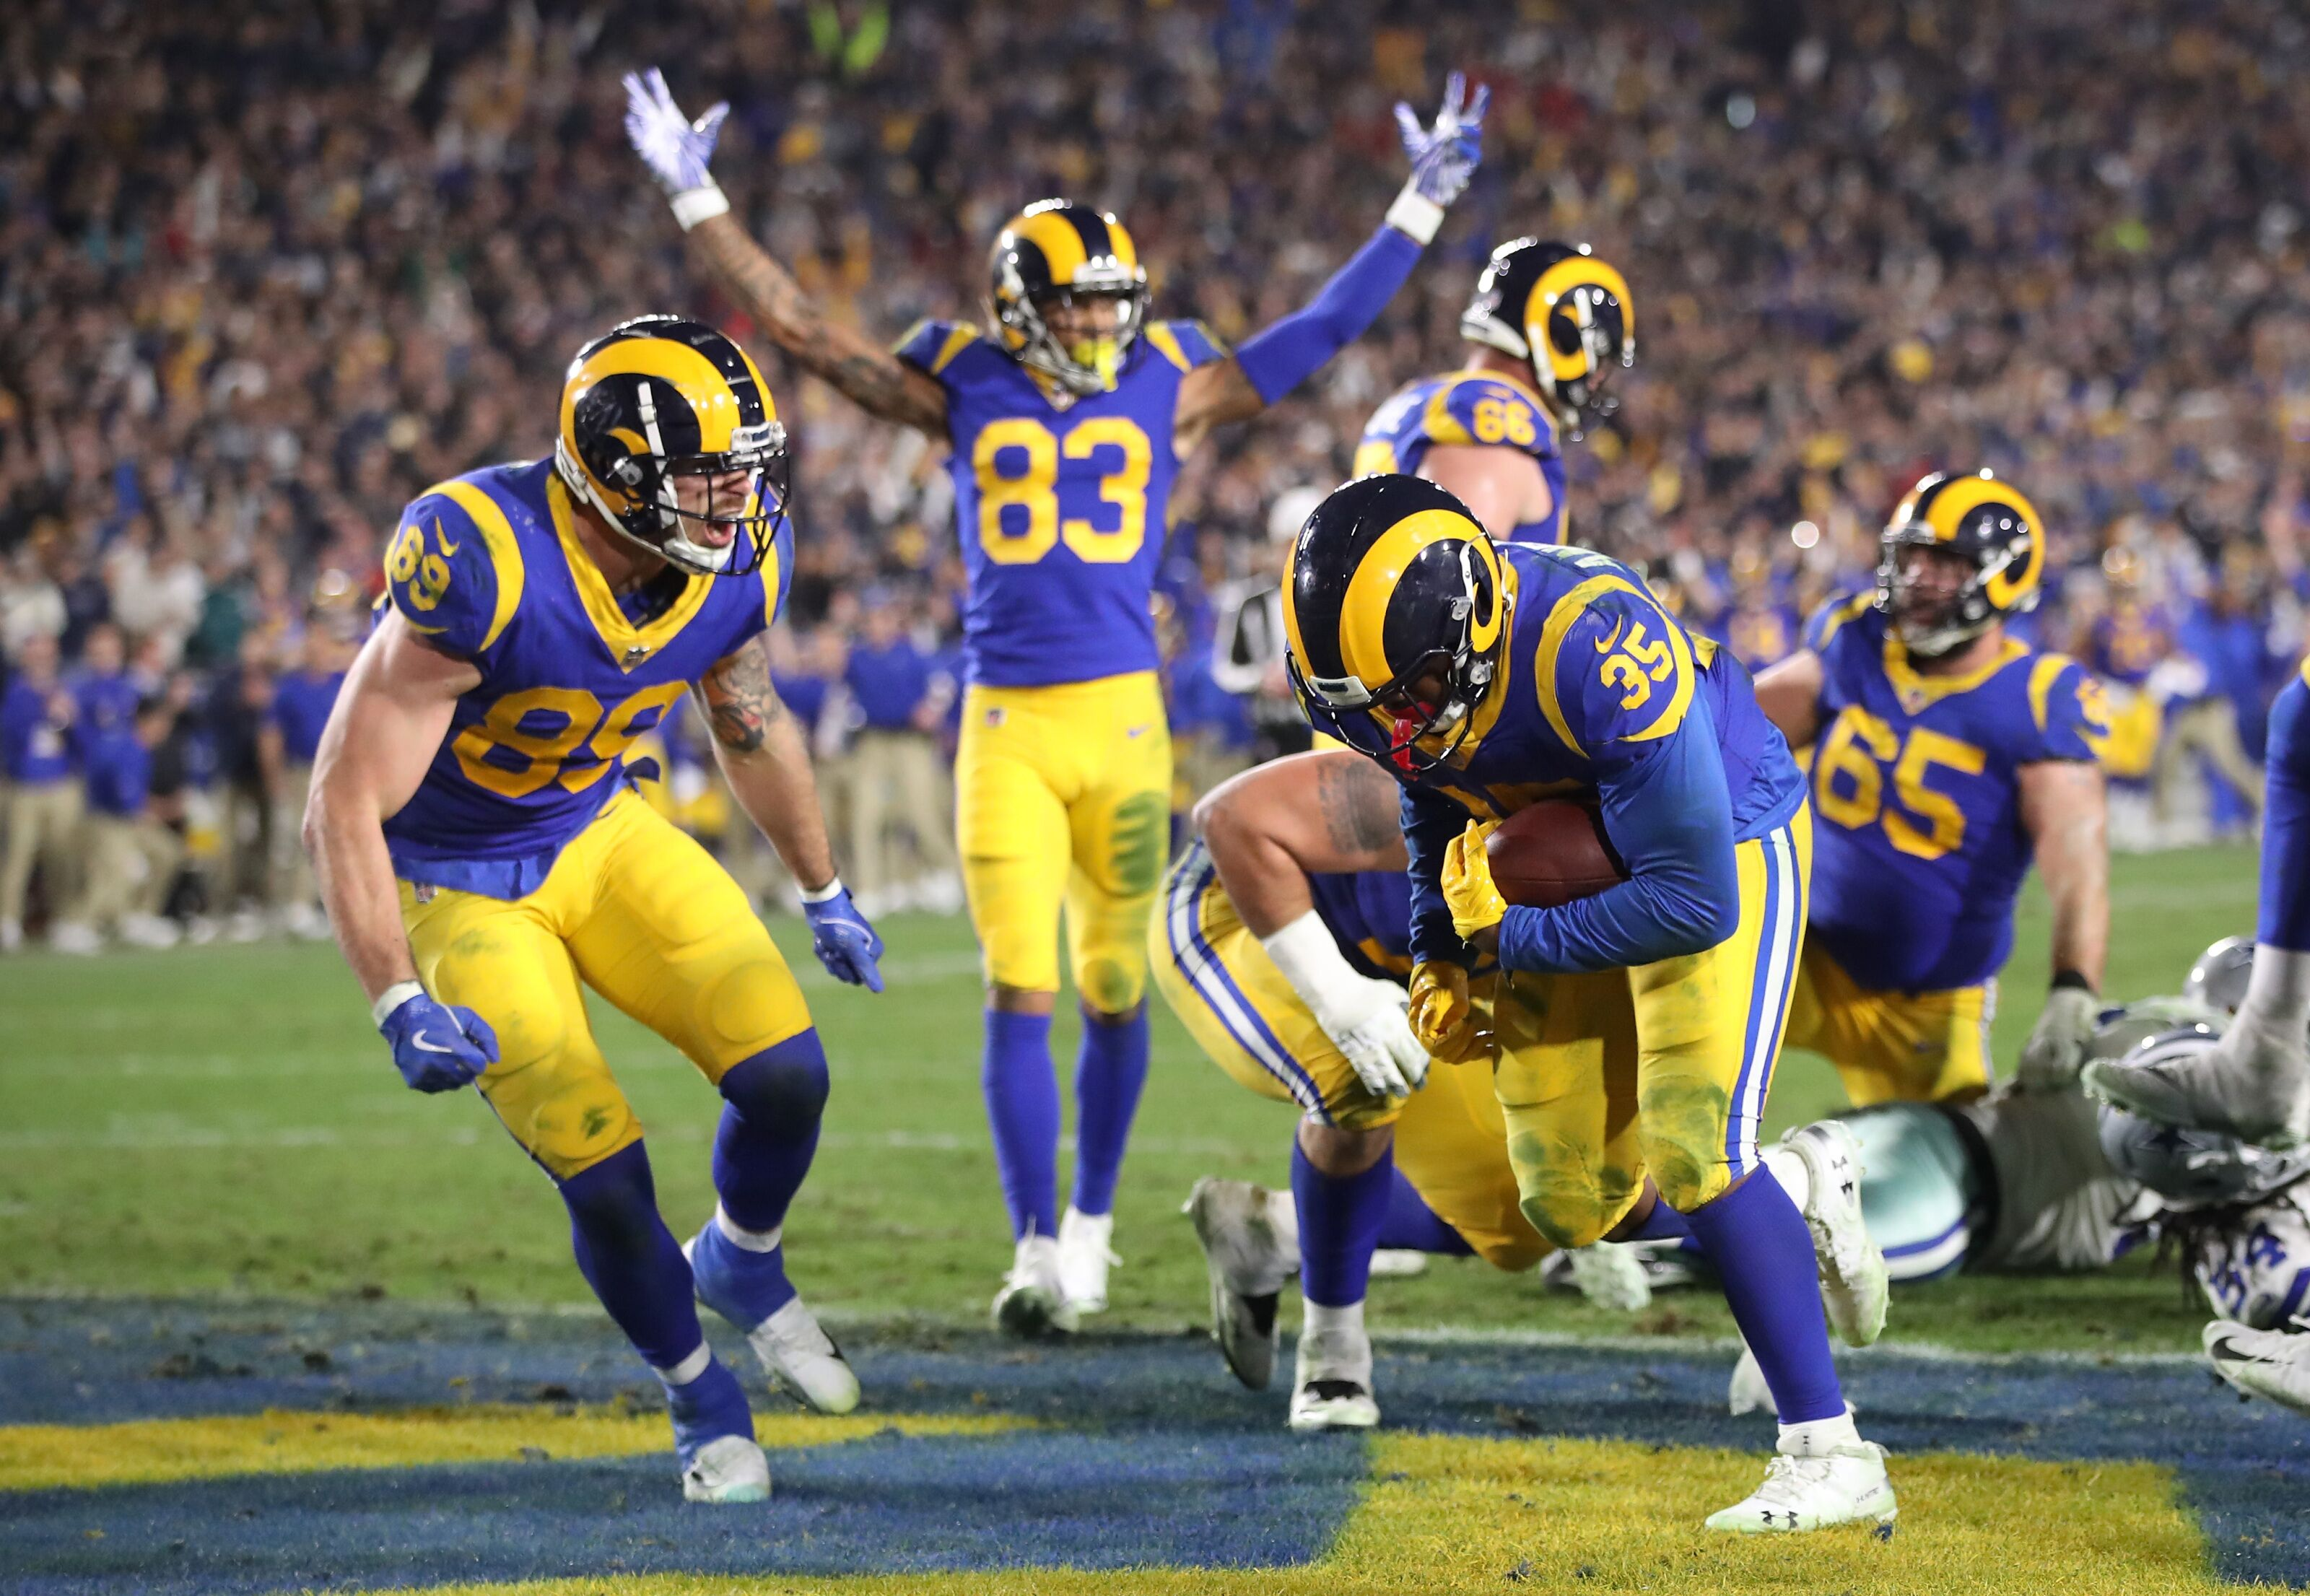 d9002eacd Los Angeles Rams will wear classic colors for the Super Bowl in Atlanta